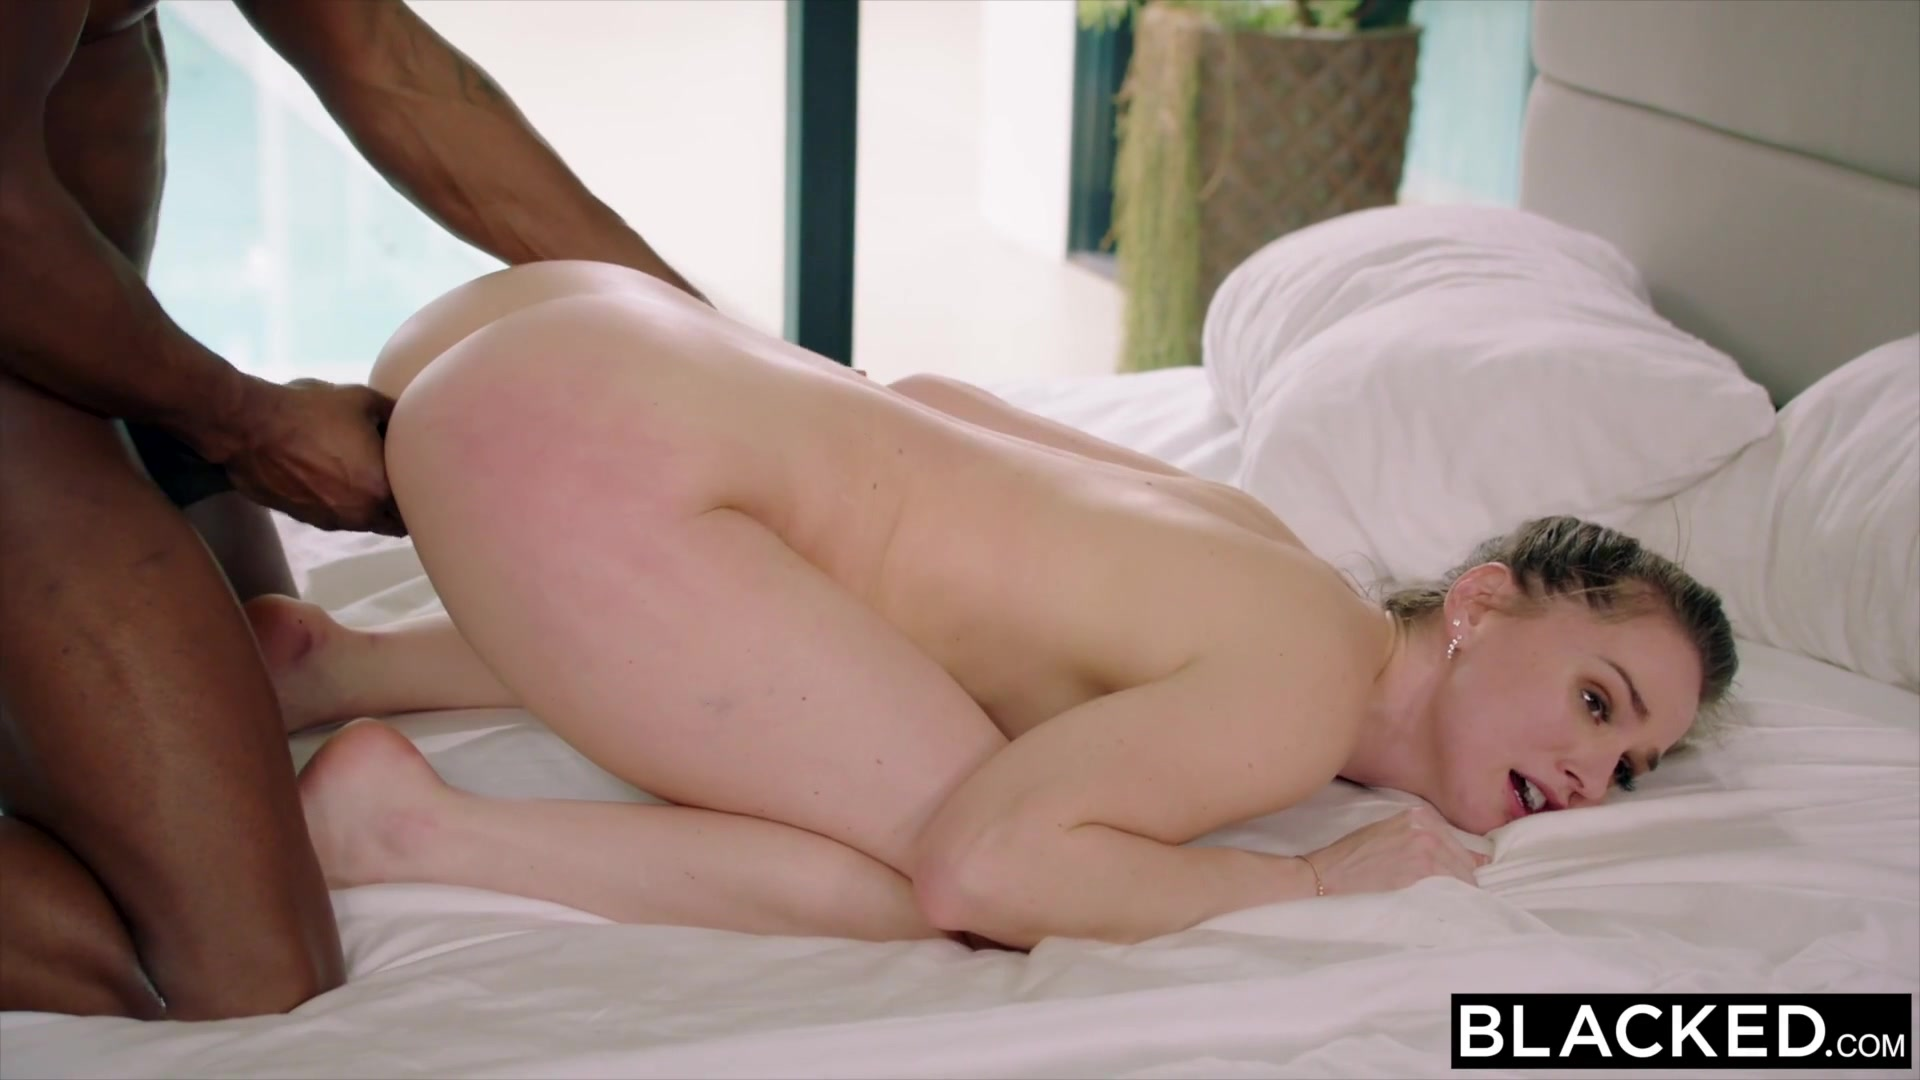 BLACKED Tori Black Has Intense BBC Sex With Her Bodyguard sex in hd video